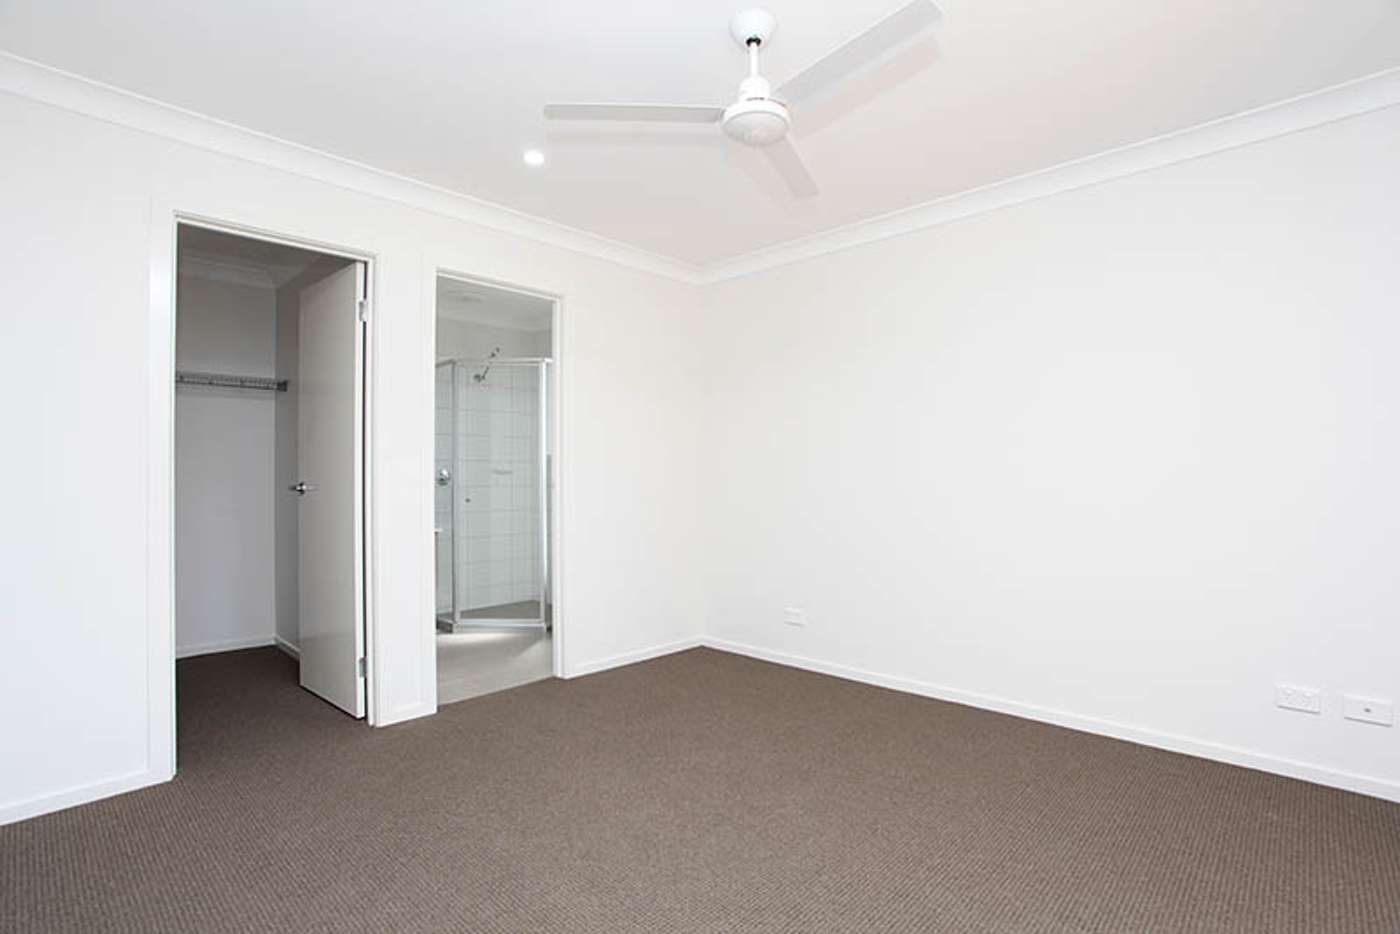 Fifth view of Homely house listing, 6 Trainor Street, Doreen VIC 3754